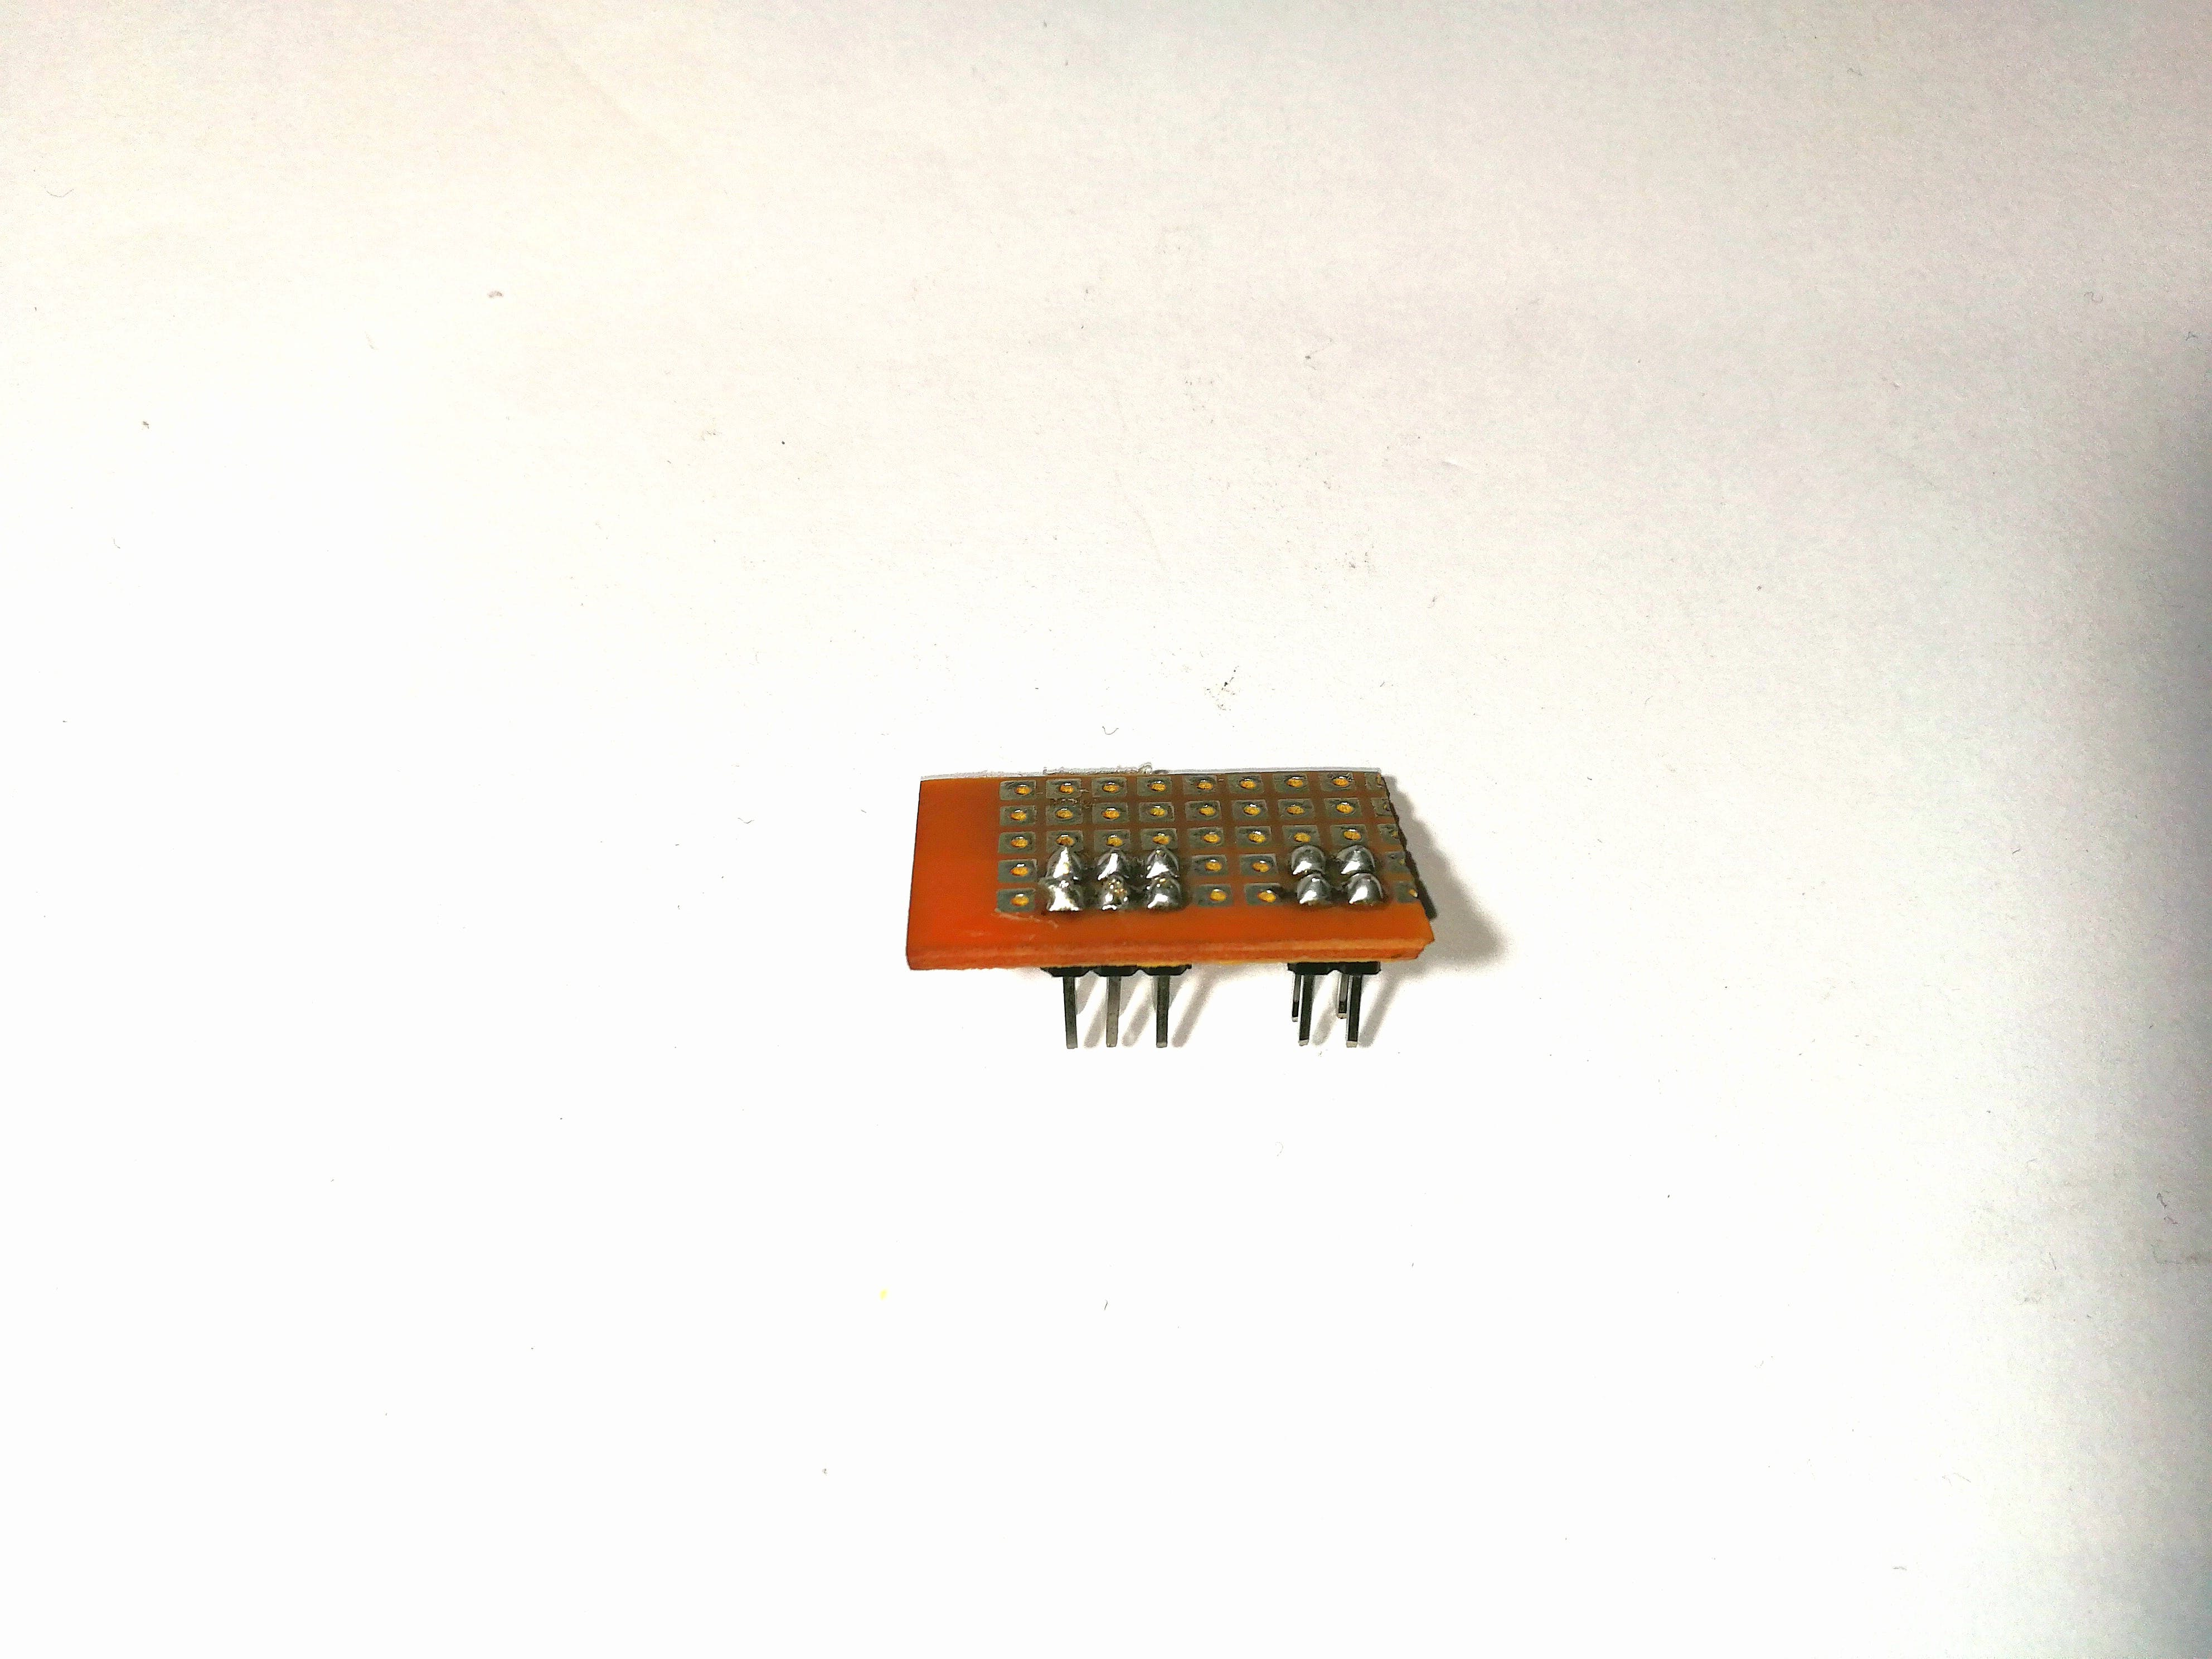 Small PCB made to fit on Idiotware Shield